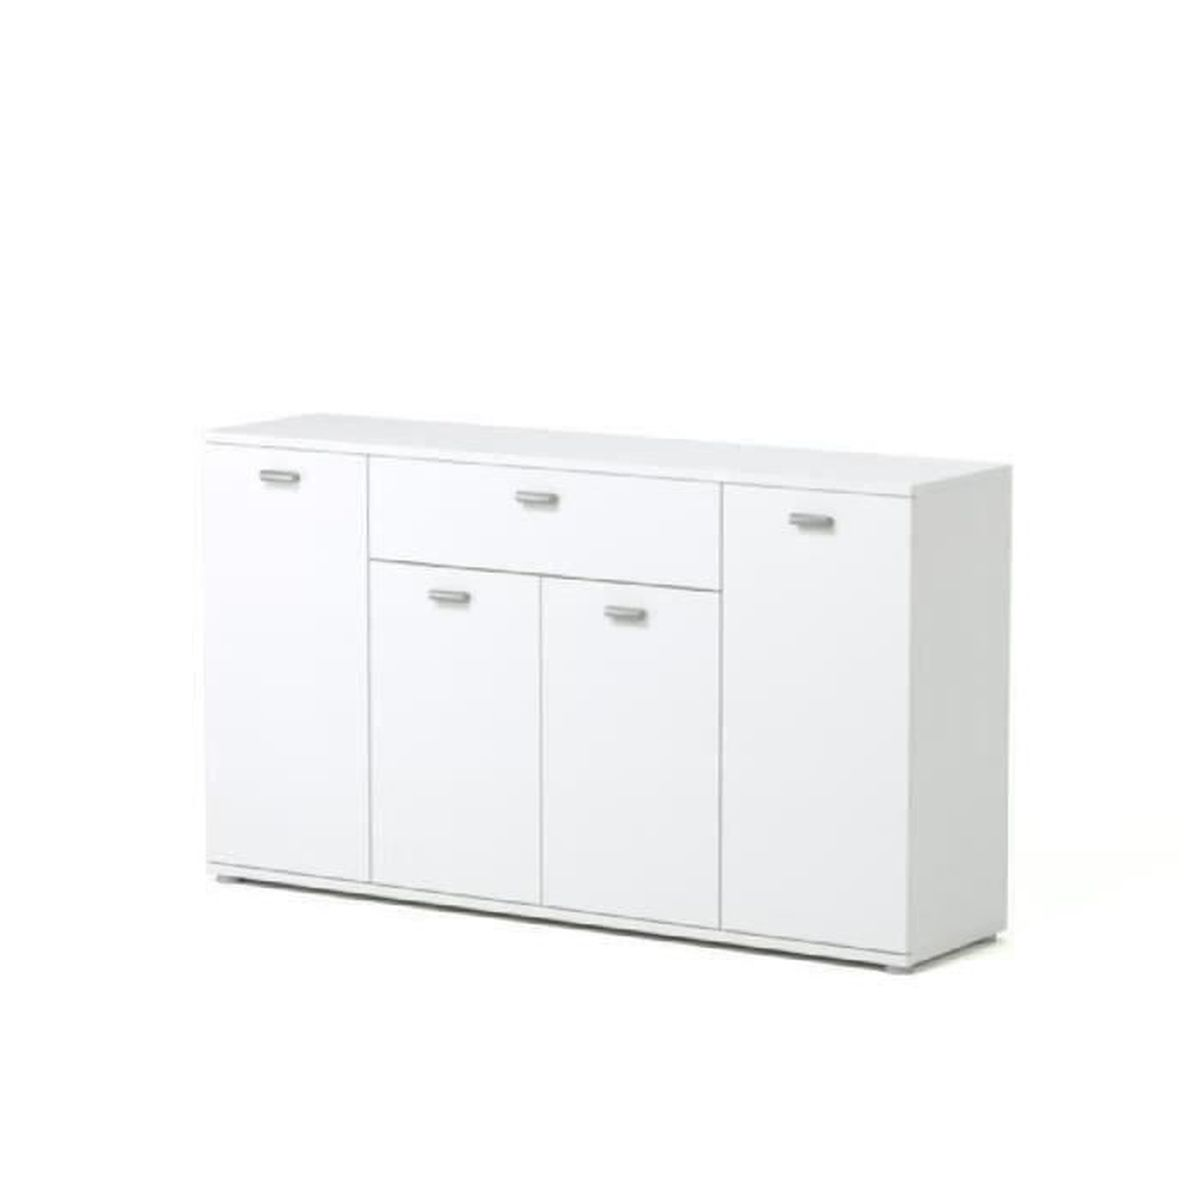 Dixi buffet bas contemporain laqu blanc l 120 cm for Meuble 2 tiroirs 120 cm woodstock laque blanc